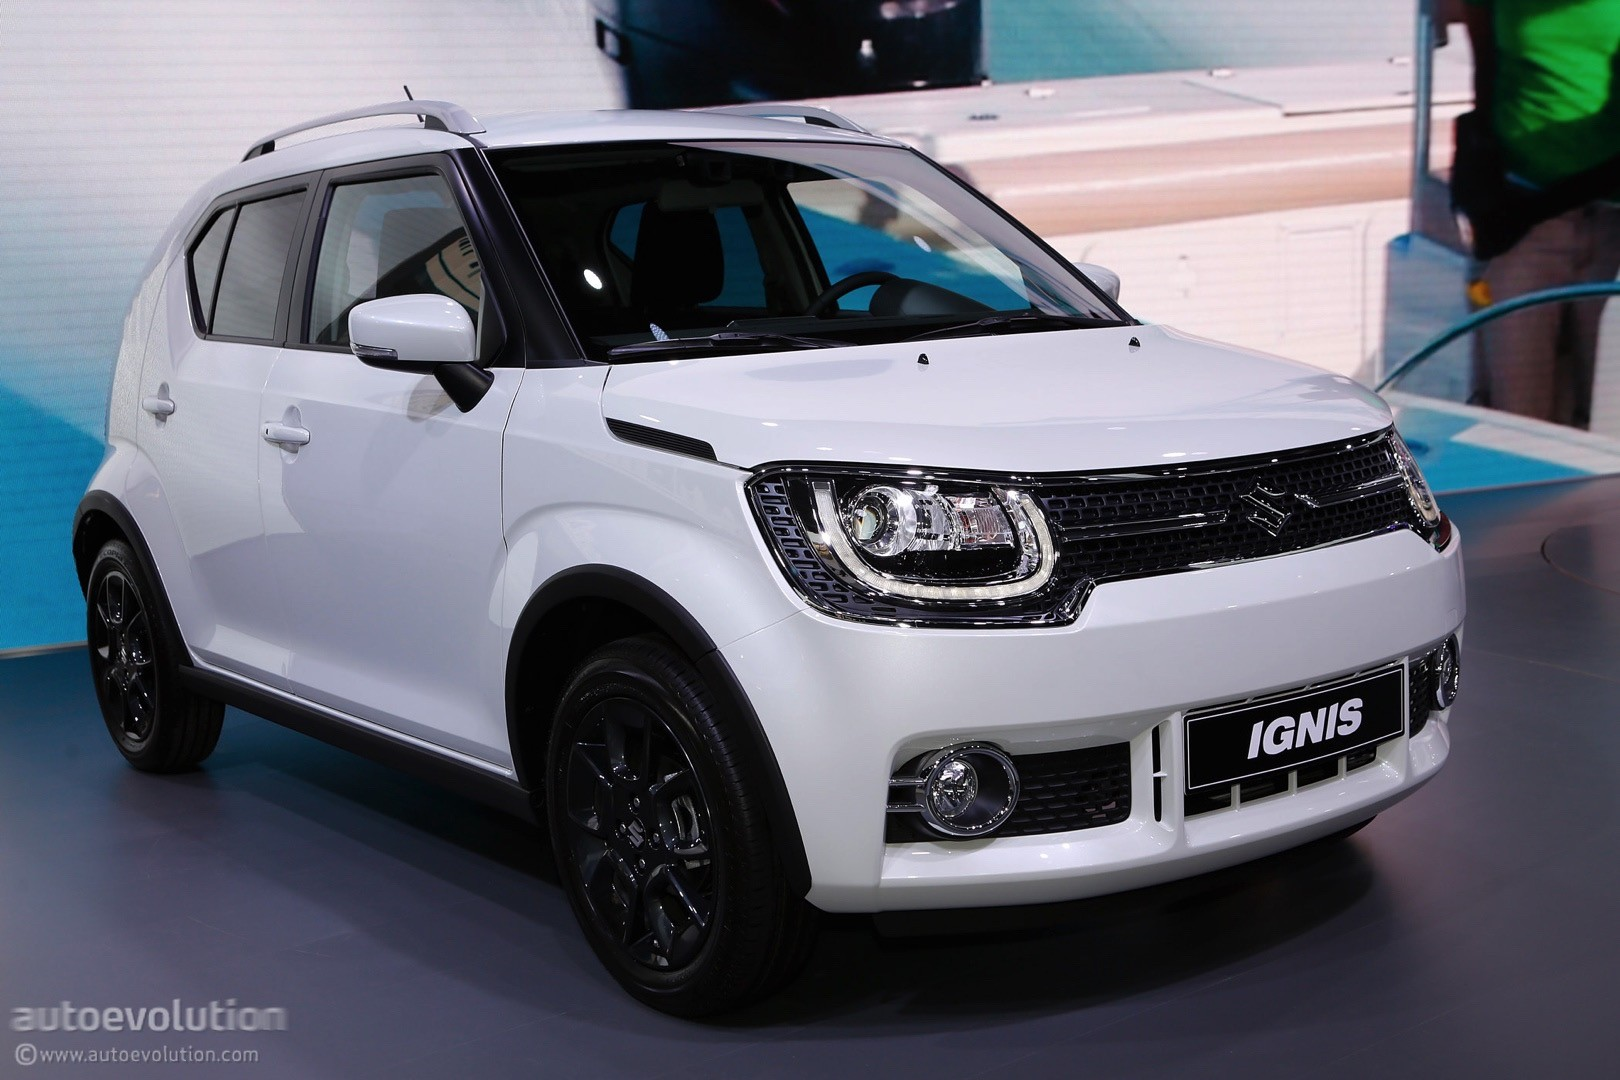 2017 suzuki ignis price set for europe 9 999 in the uk. Black Bedroom Furniture Sets. Home Design Ideas